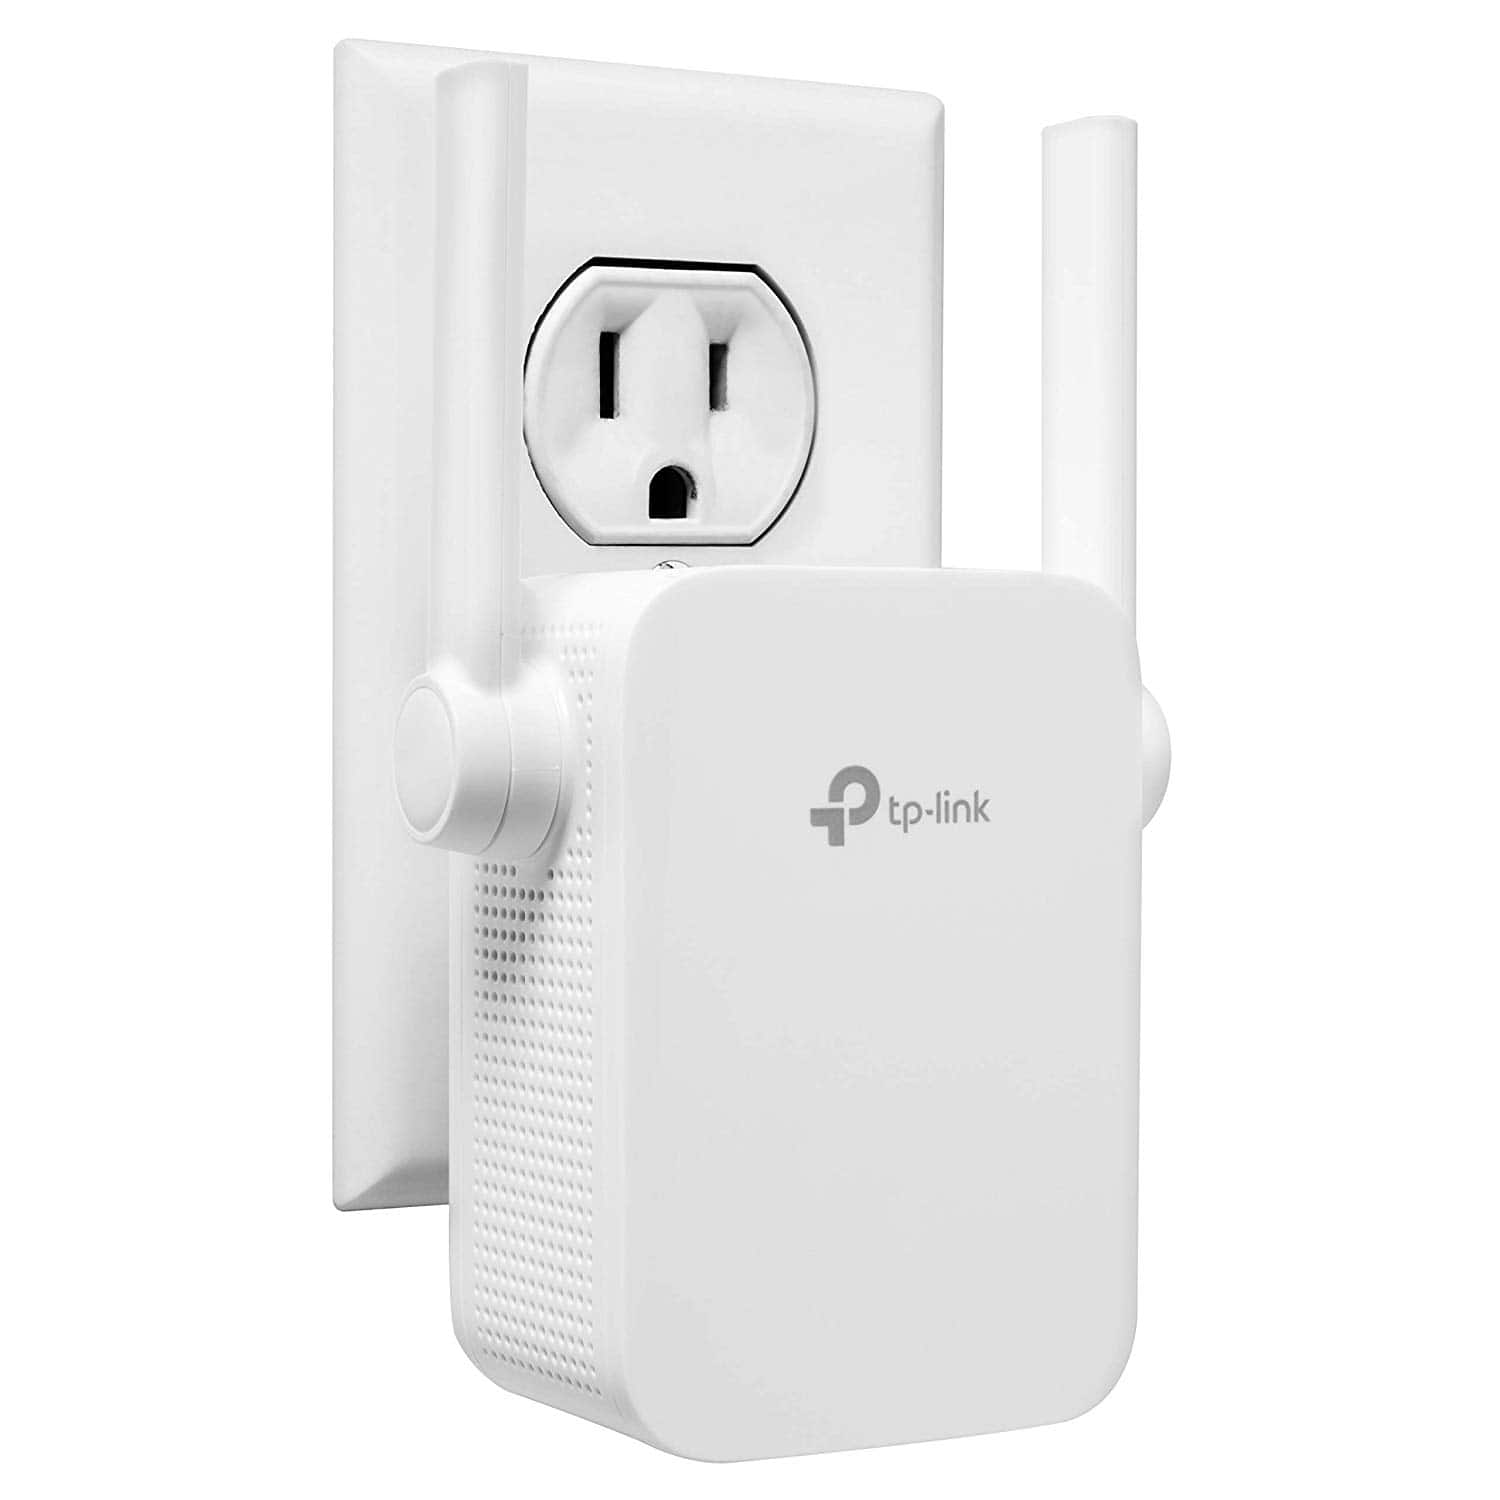 TP-Link N300 WiFi Range Extender | Up to 300Mbps | WiFi Extender, Repeater | (TL-WA855RE) - Amazon $11.95 + FSSS